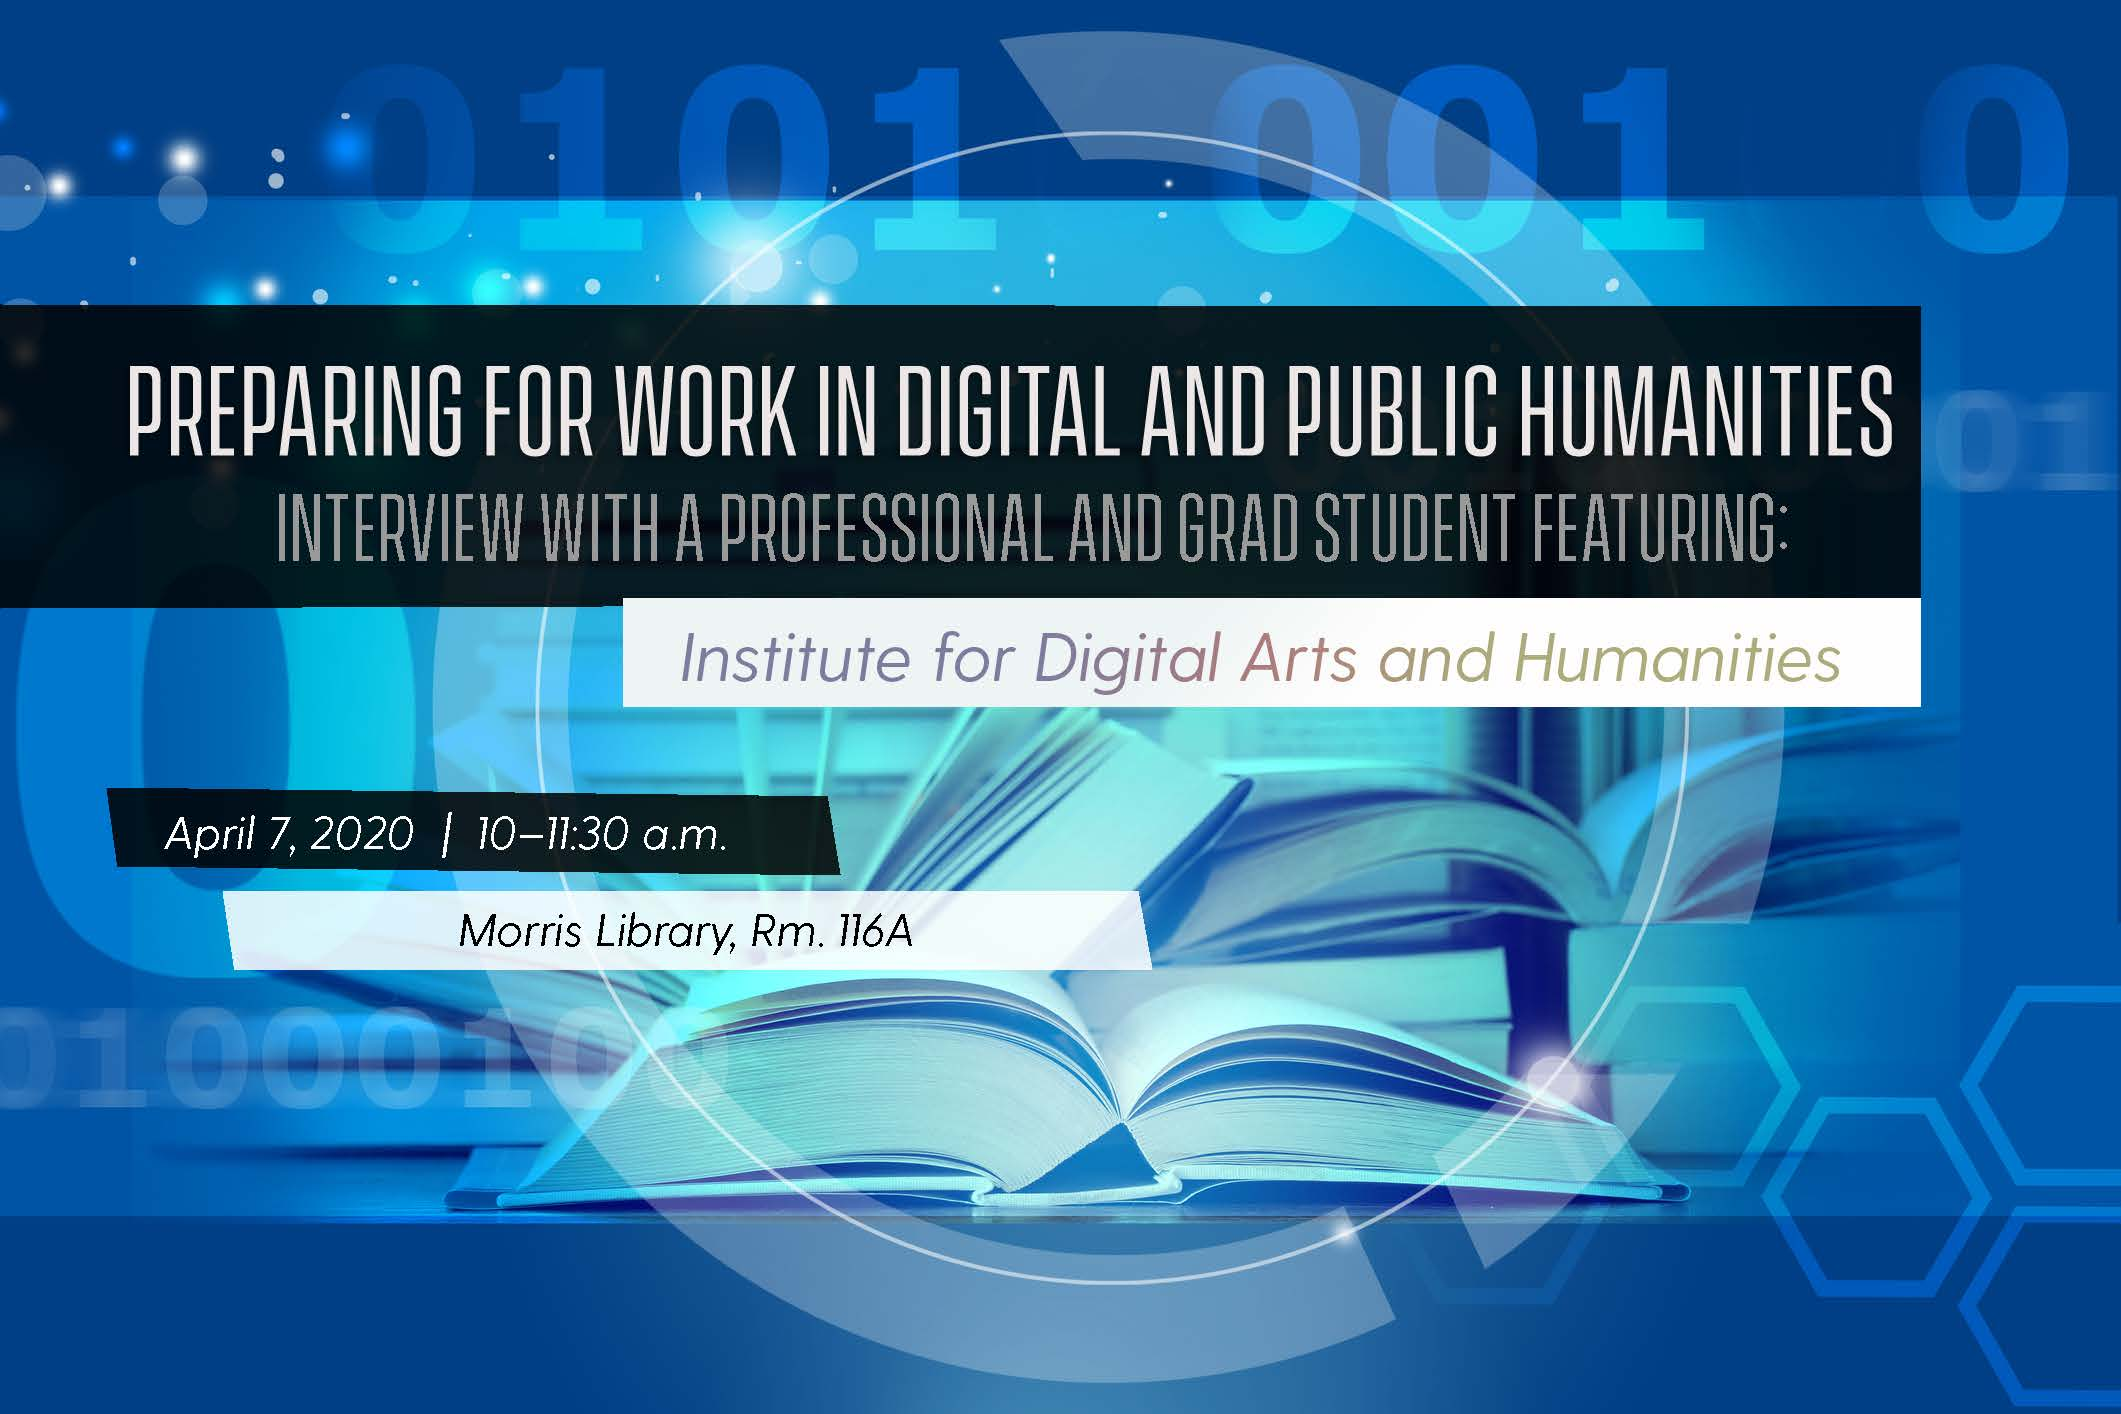 CANCELLED - Preparing for Work in Digital Public Humanities